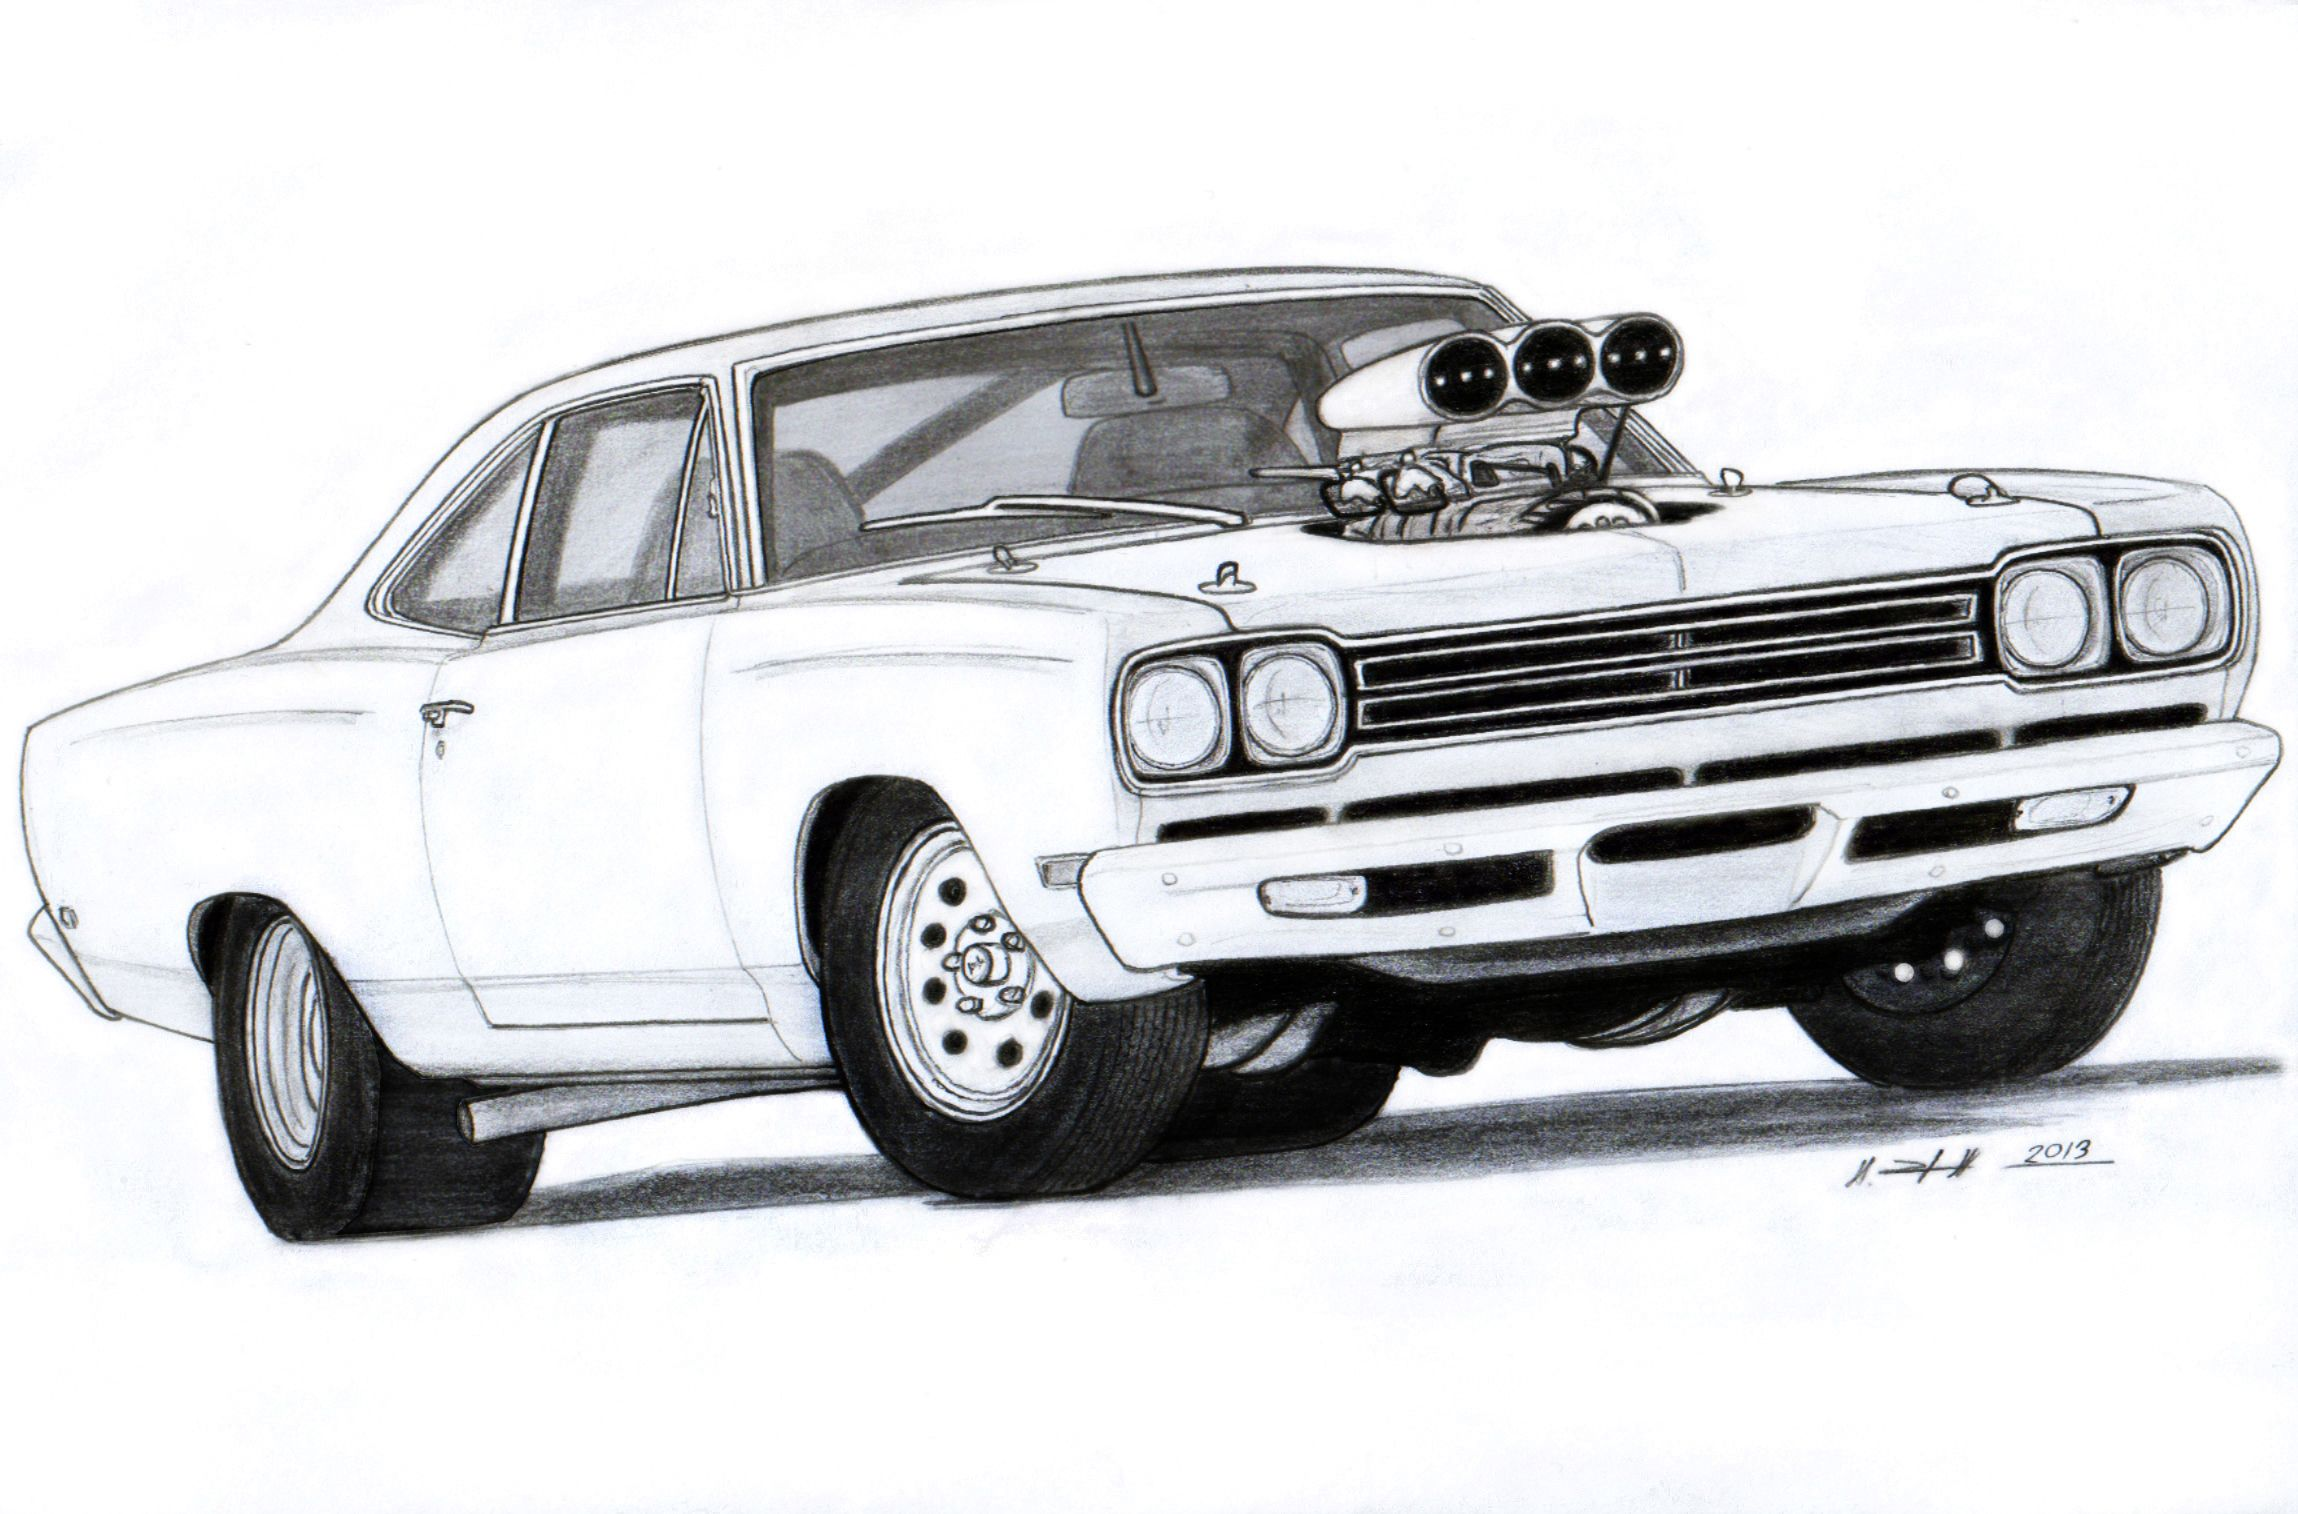 1969 Plymouth Roadrunner Drawing By Vertualissimo On Deviantart Cool Car Drawings Car Drawings Plymouth Roadrunner